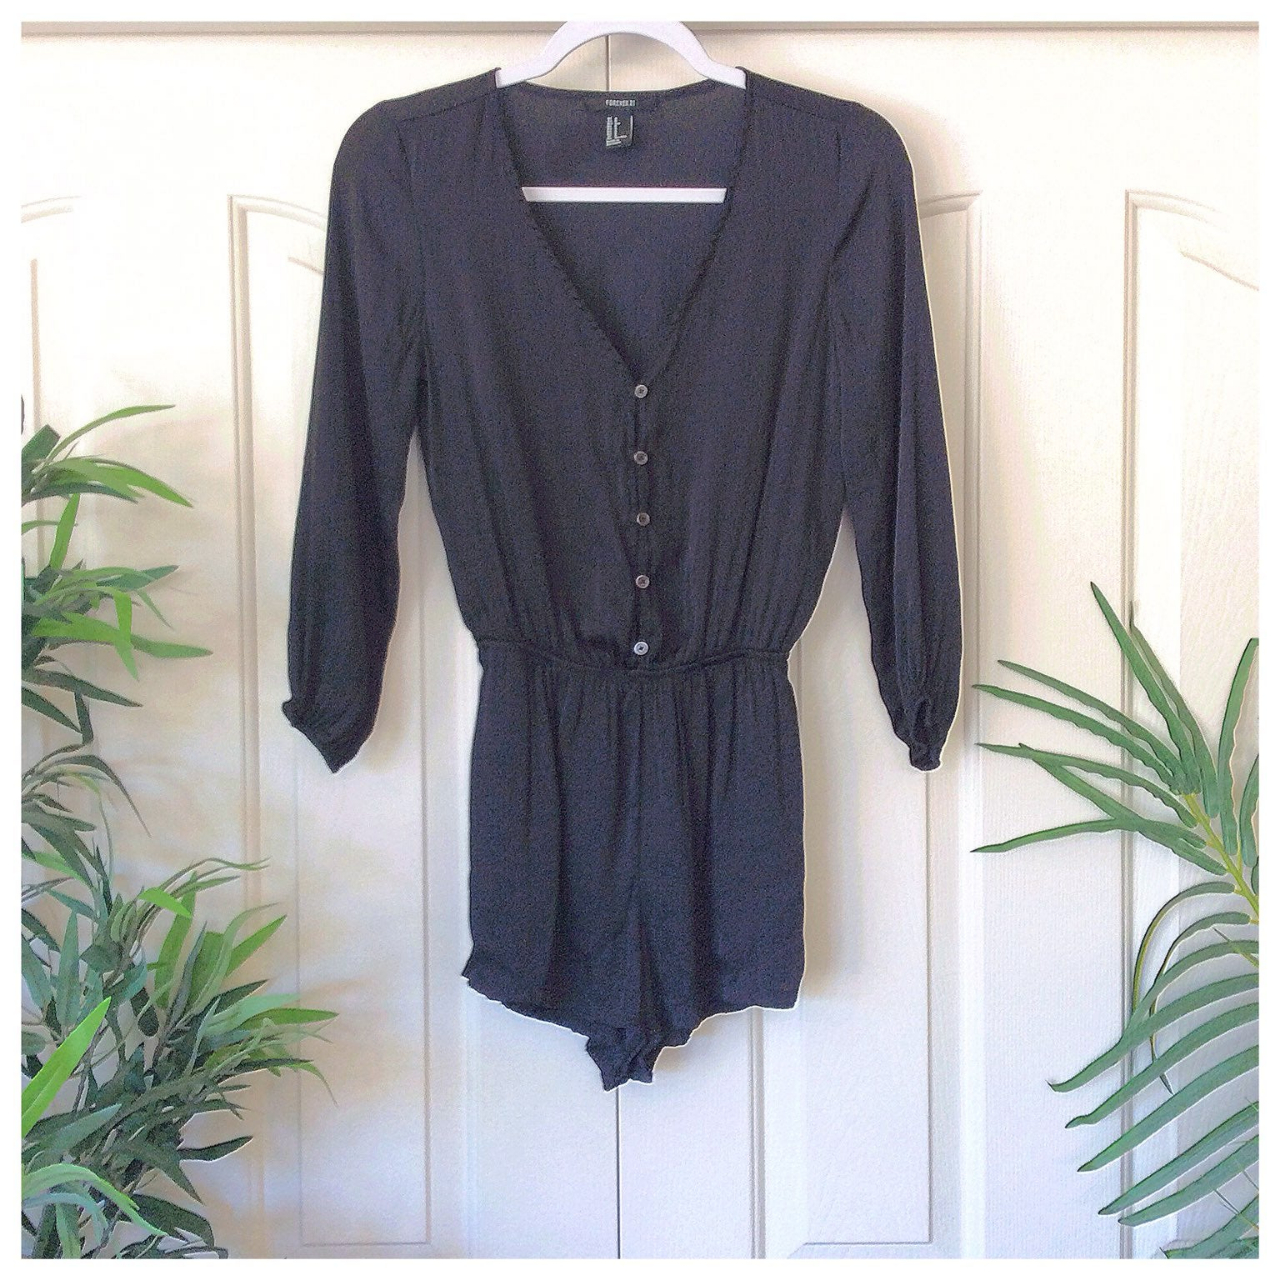 Product Image 1 - Forever 21 Small Black Romper.